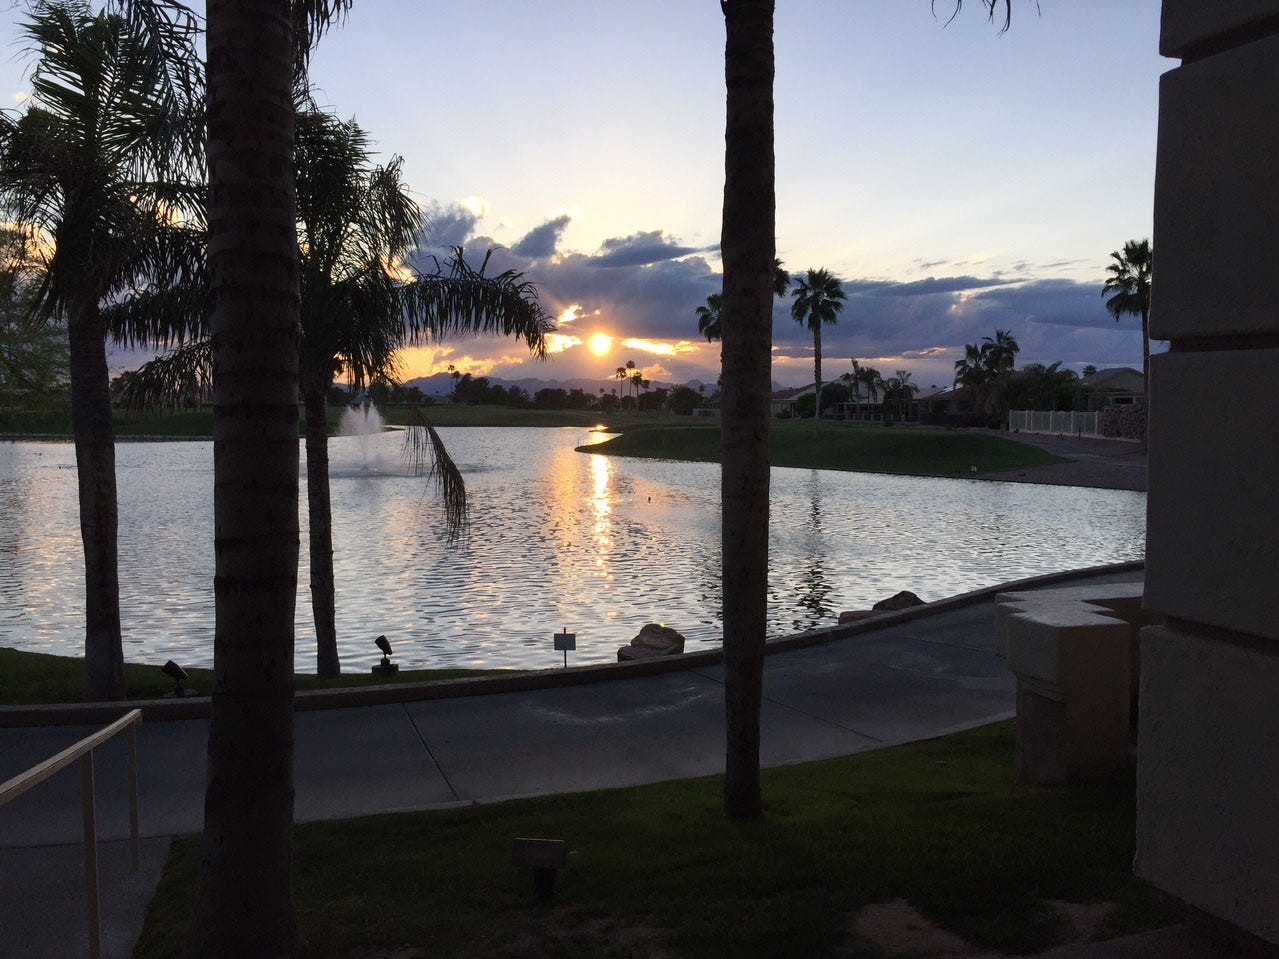 Sunset at Oakwood Clubhouse in Sun Lakes.